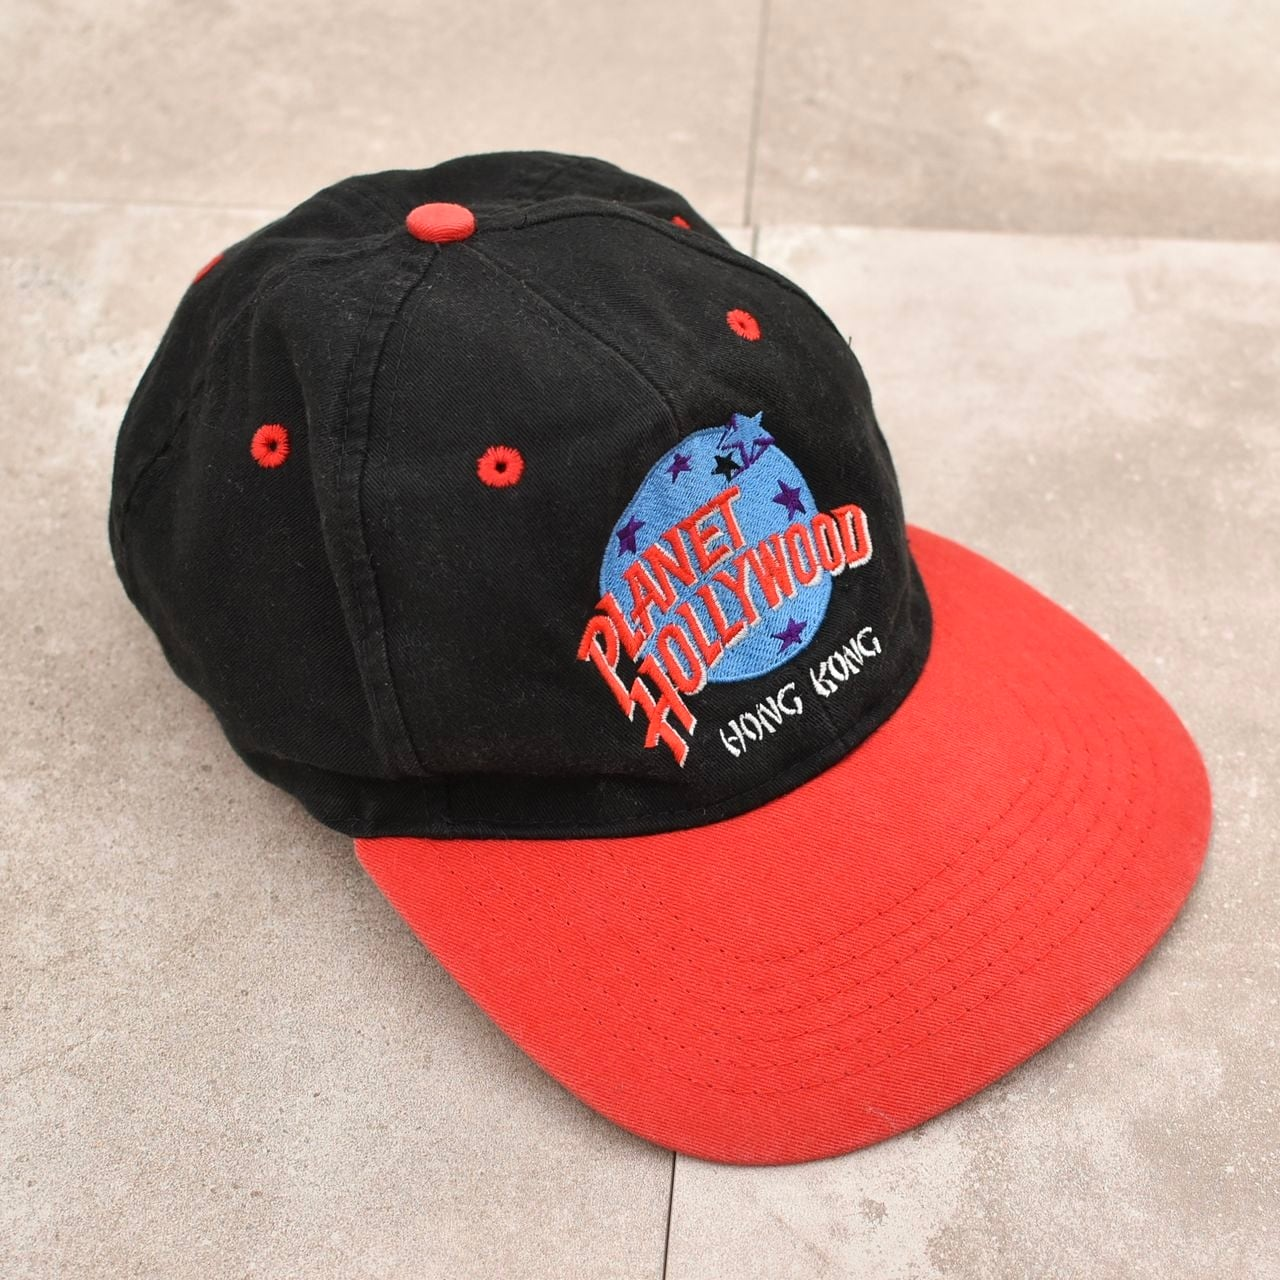 PLANET HOLLYWOOD embroidery 6panel cap